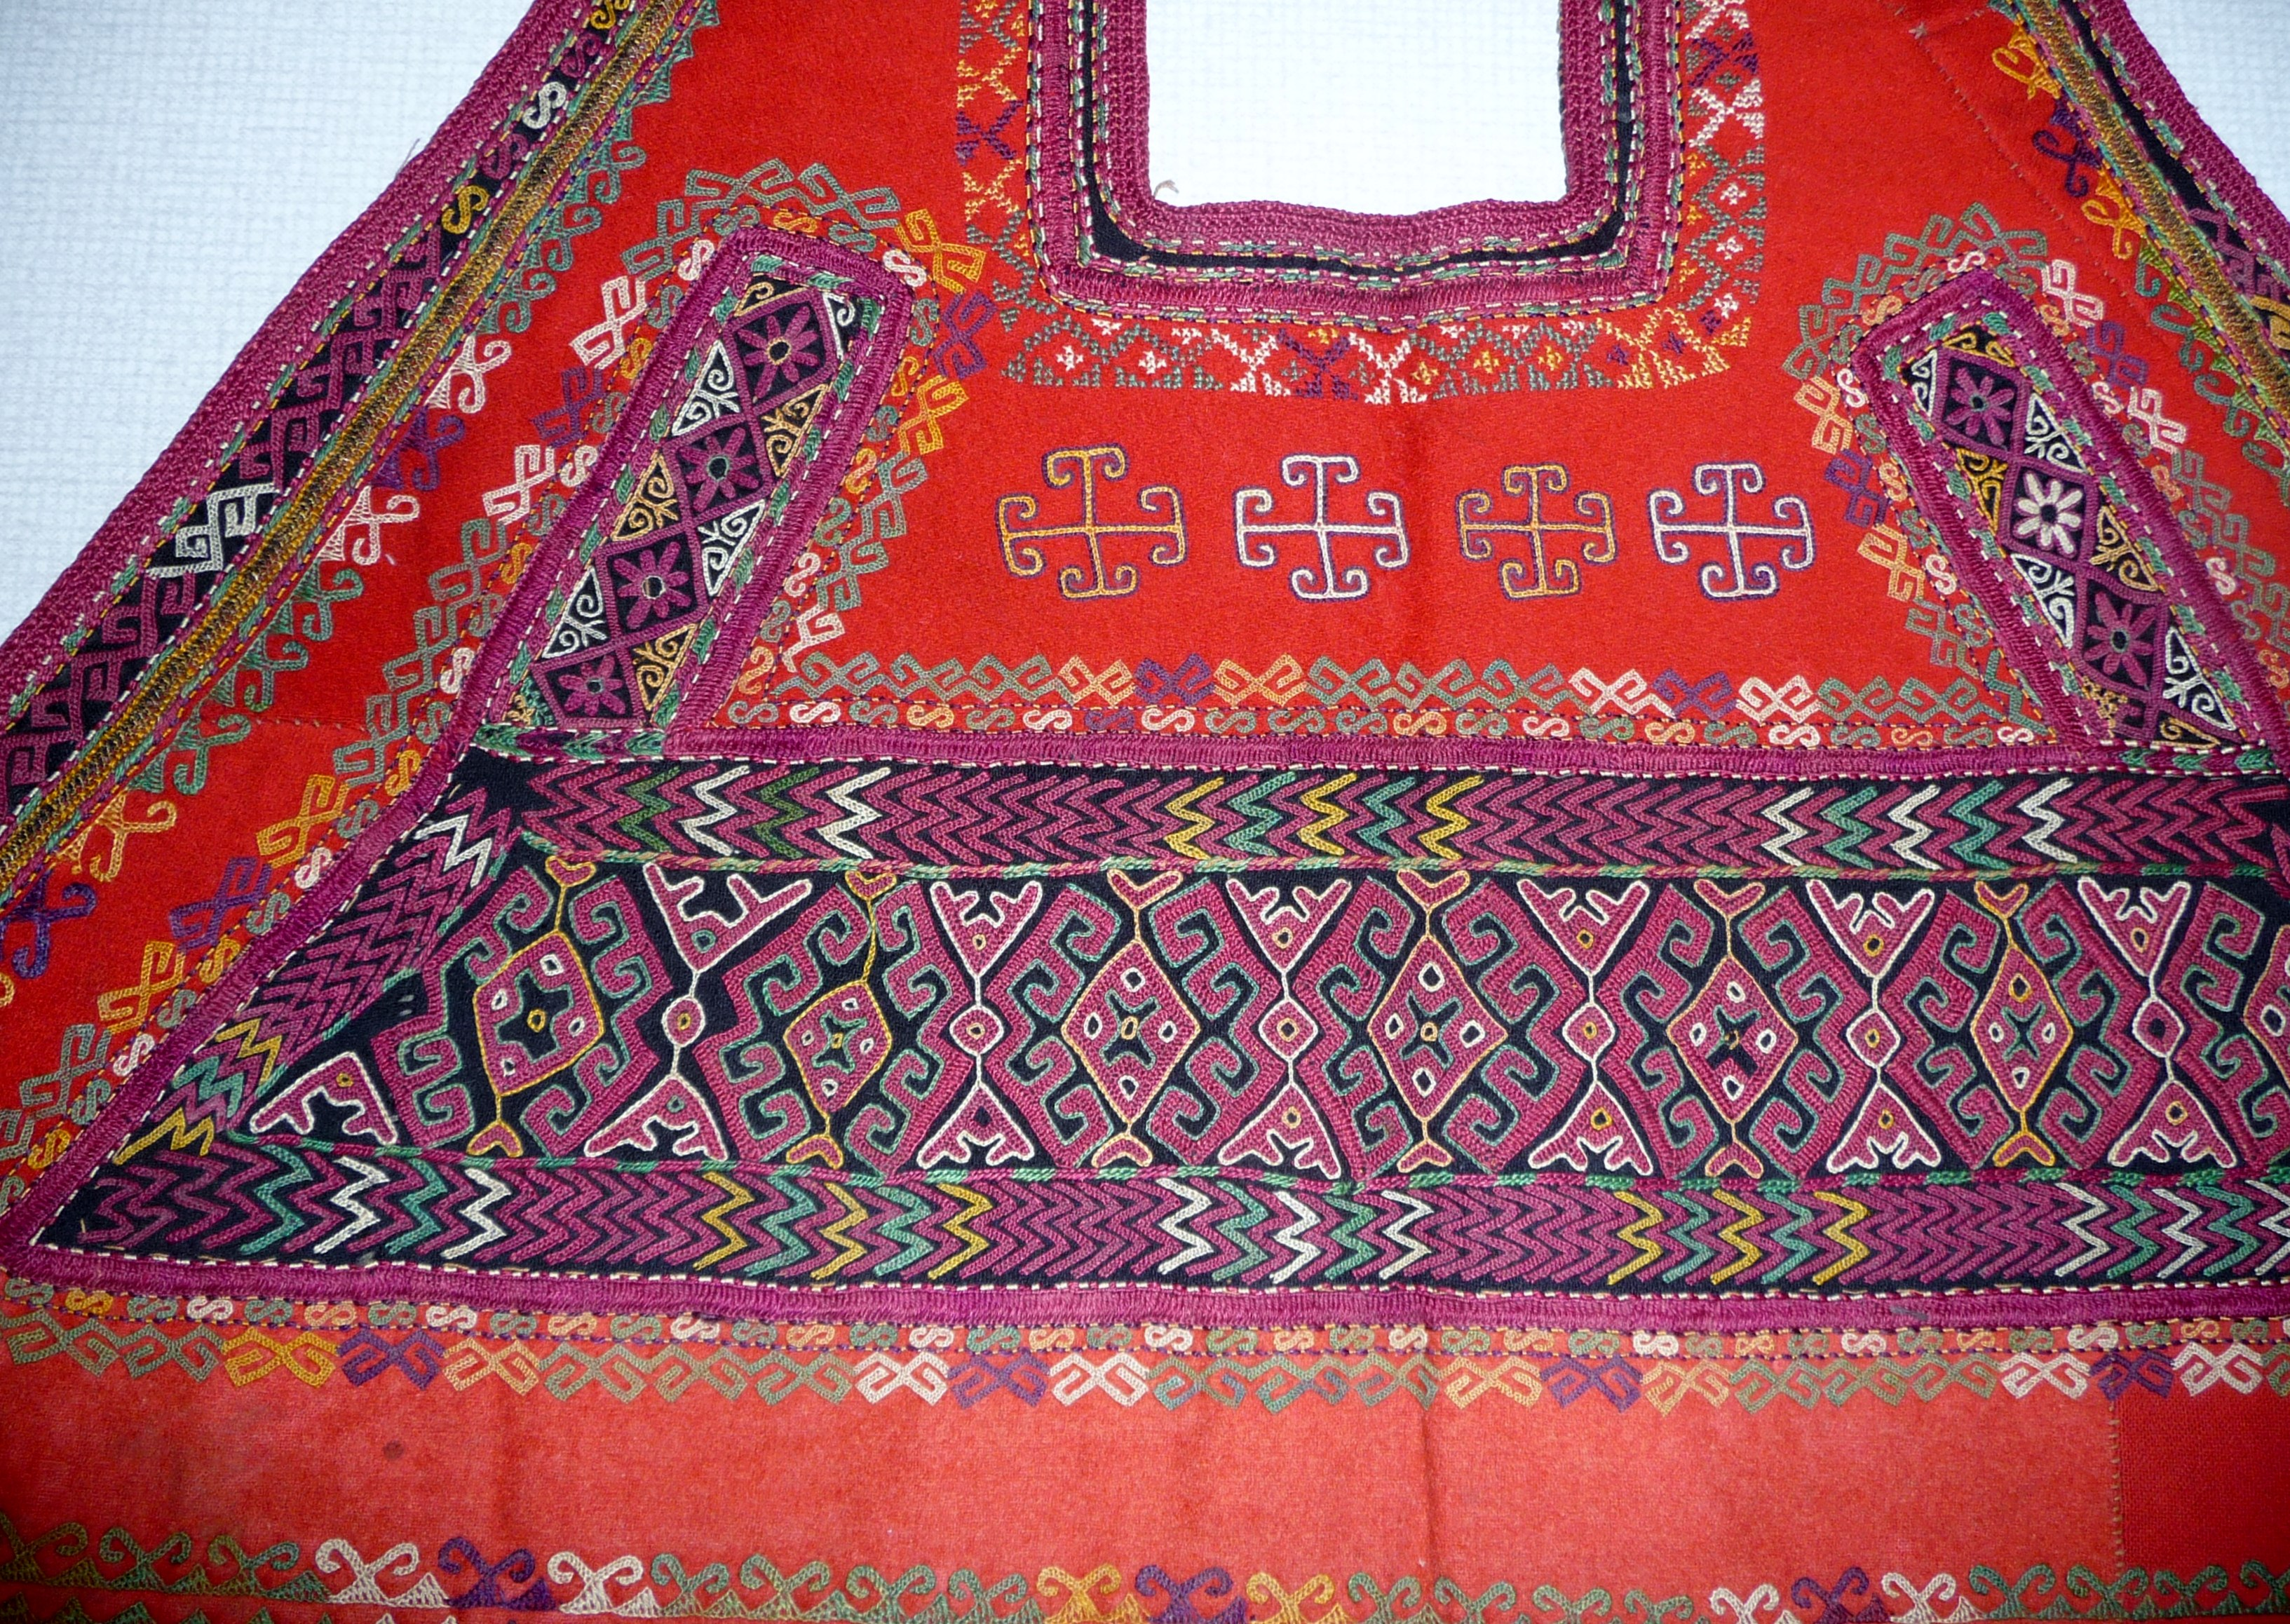 embroidered head covering by Qaraqalpaq people